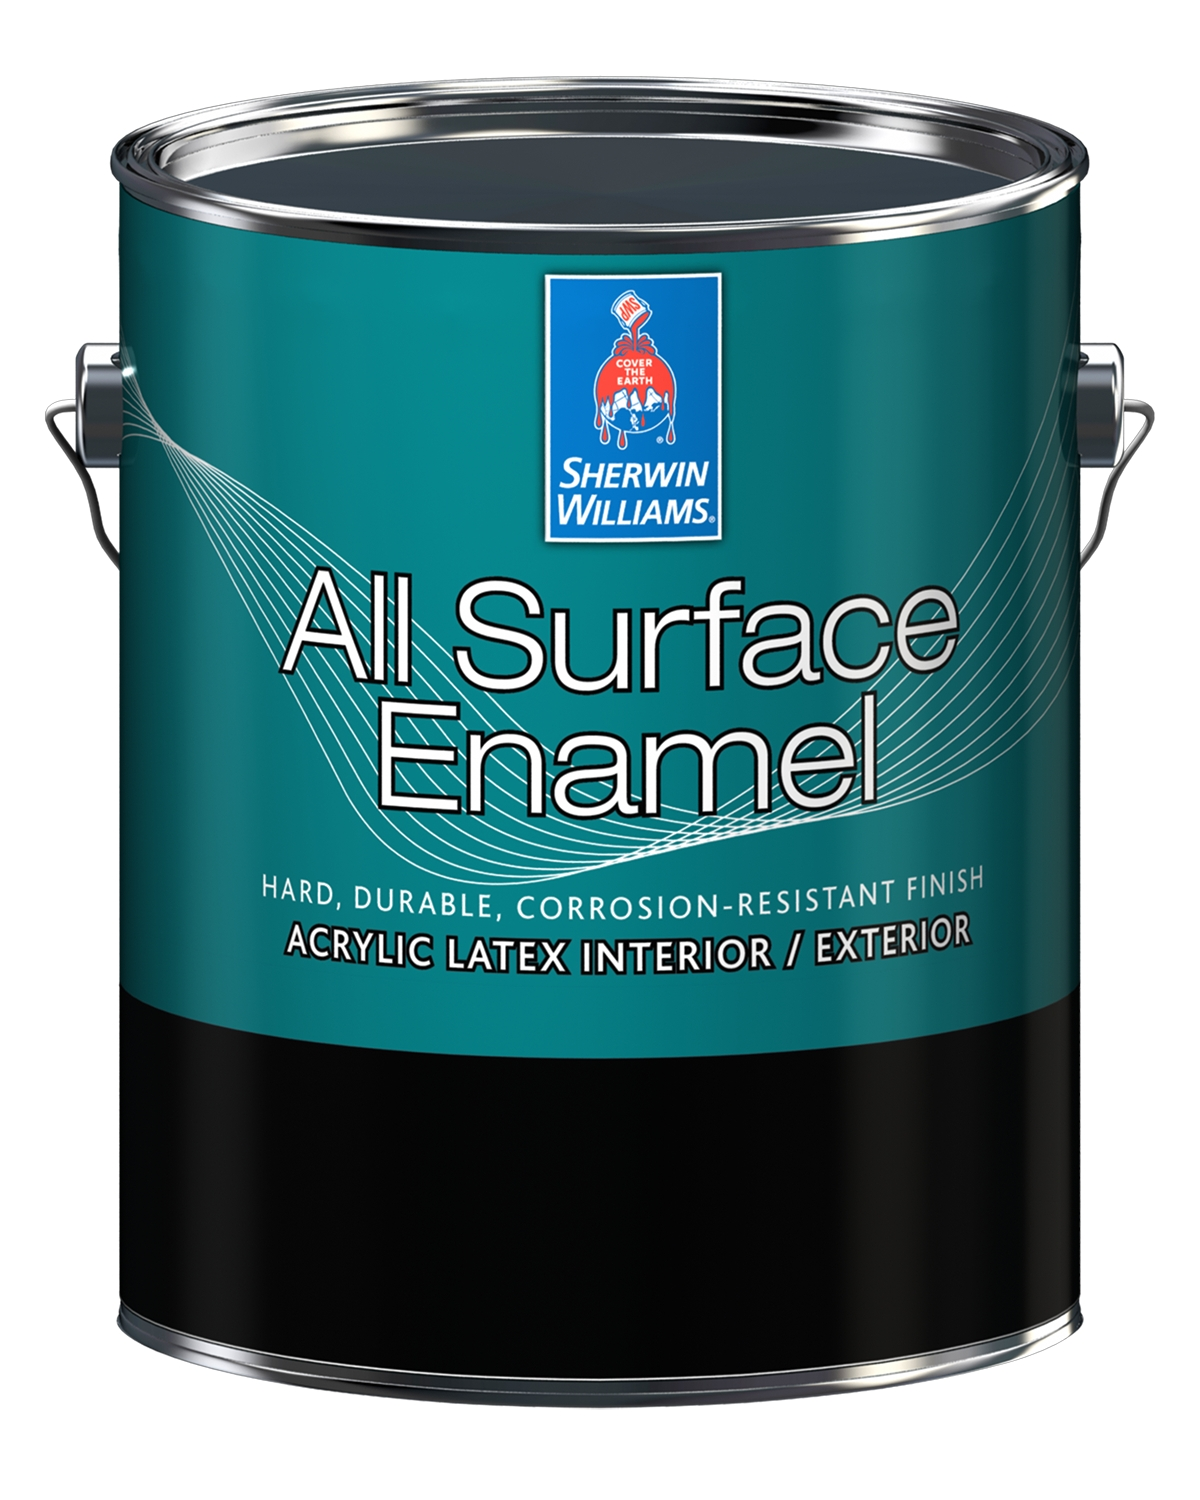 Our Most Durable Paint Ever